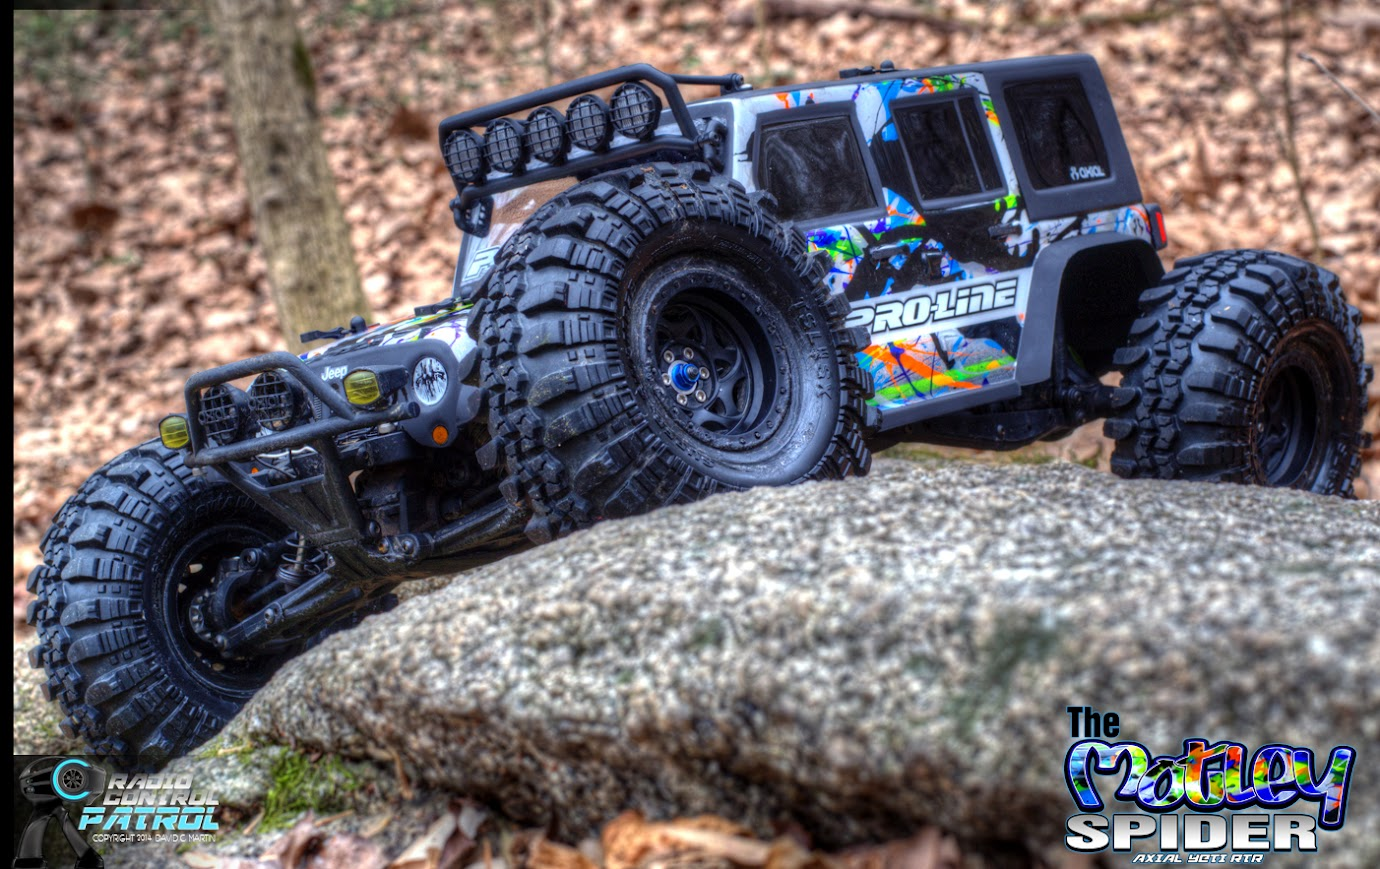 Here is video of the proline jeep wrangler unlimited body on the yeti rtr running pretty hard